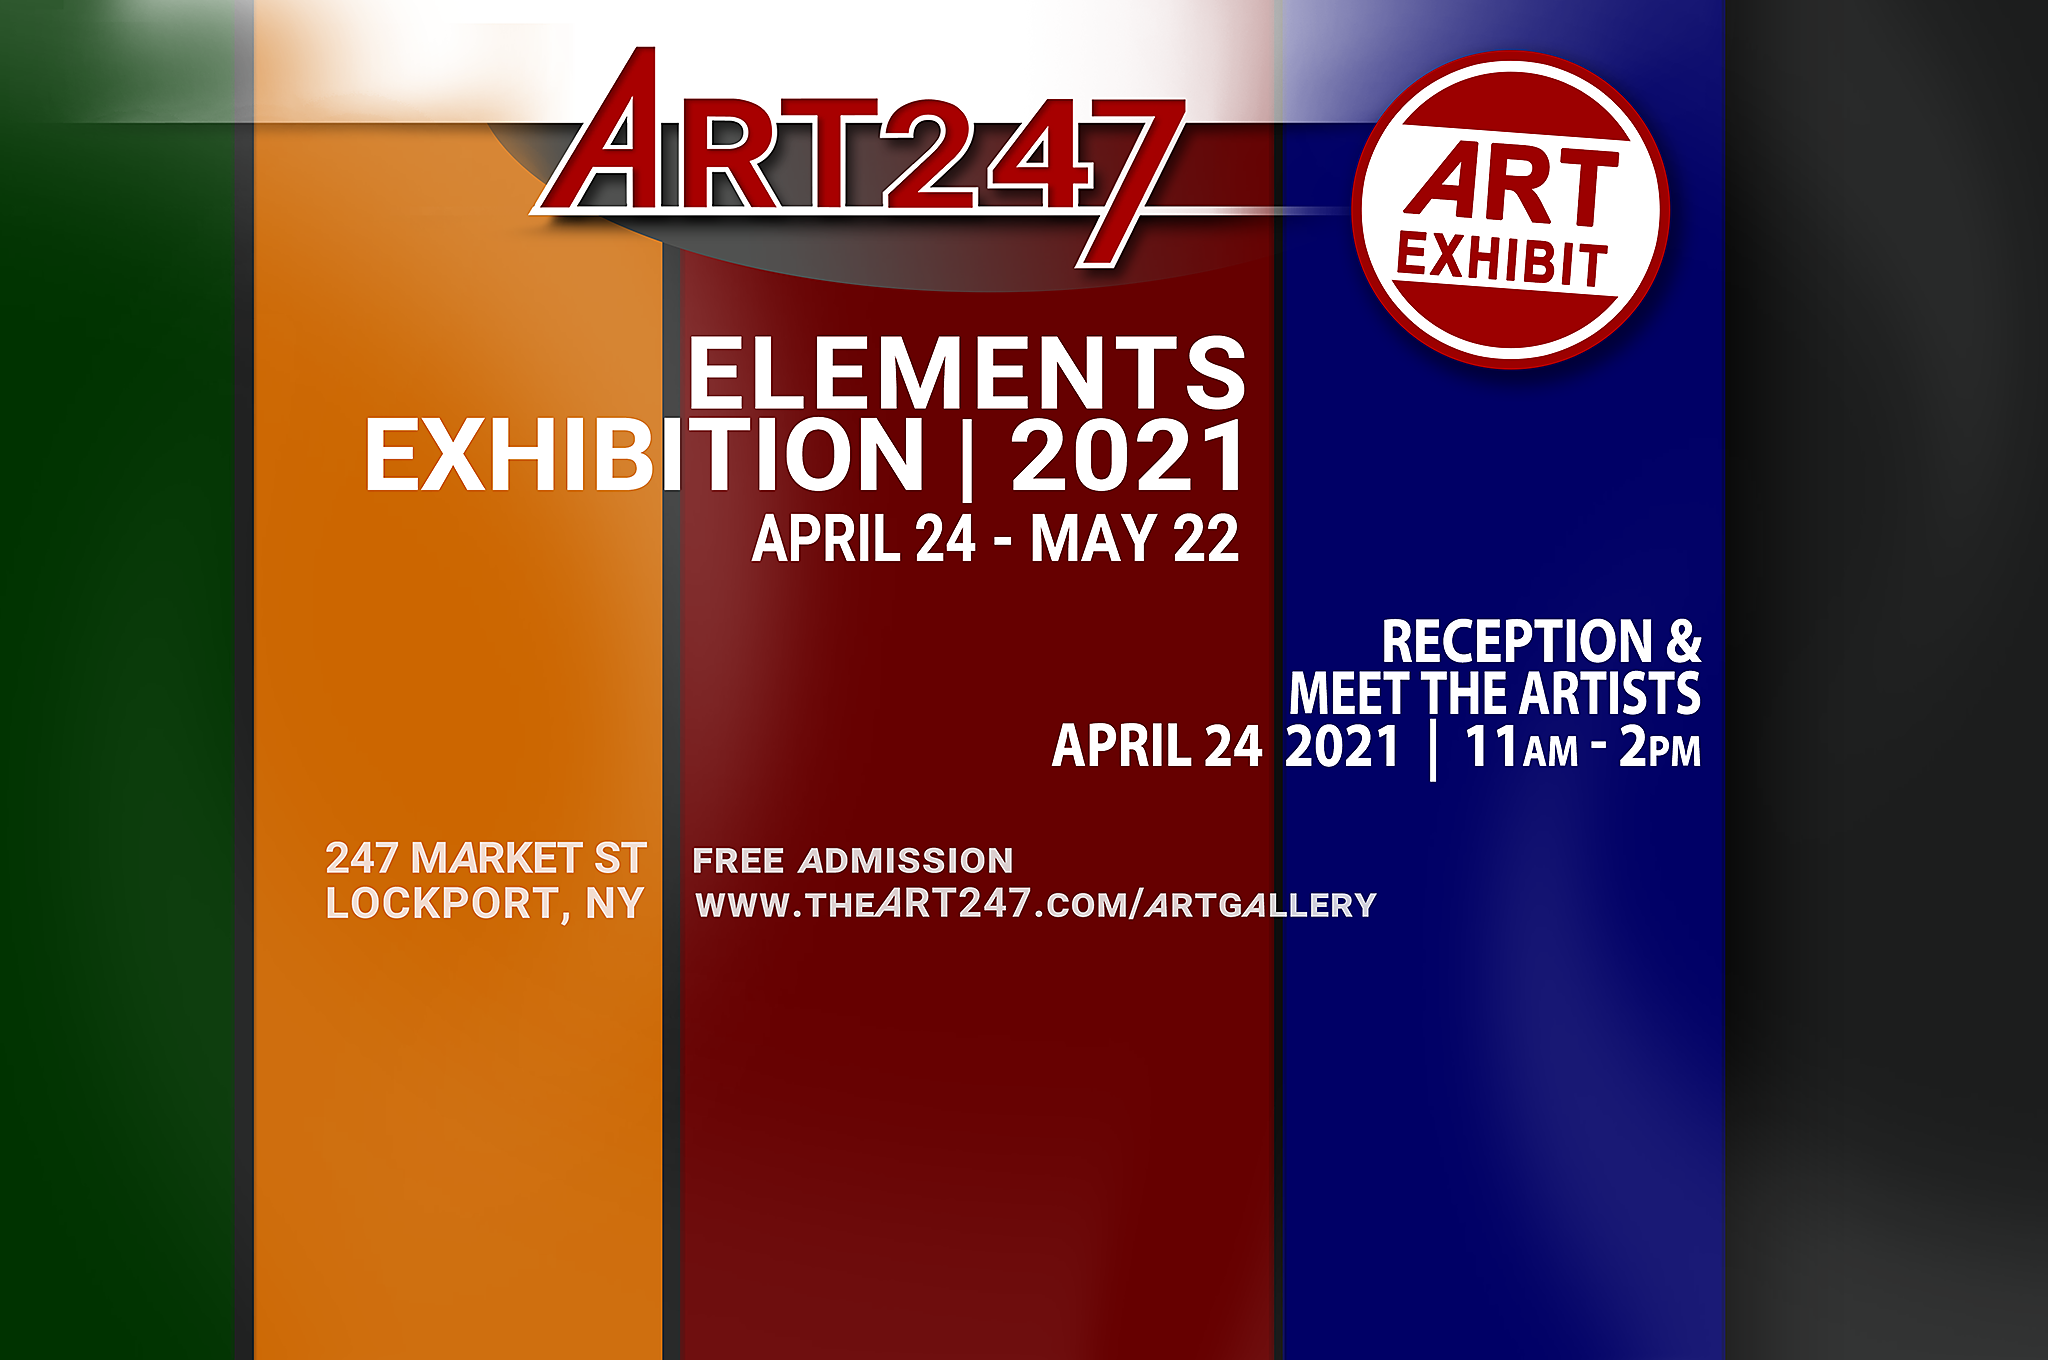 ELEMENTS | Exhibition 2021